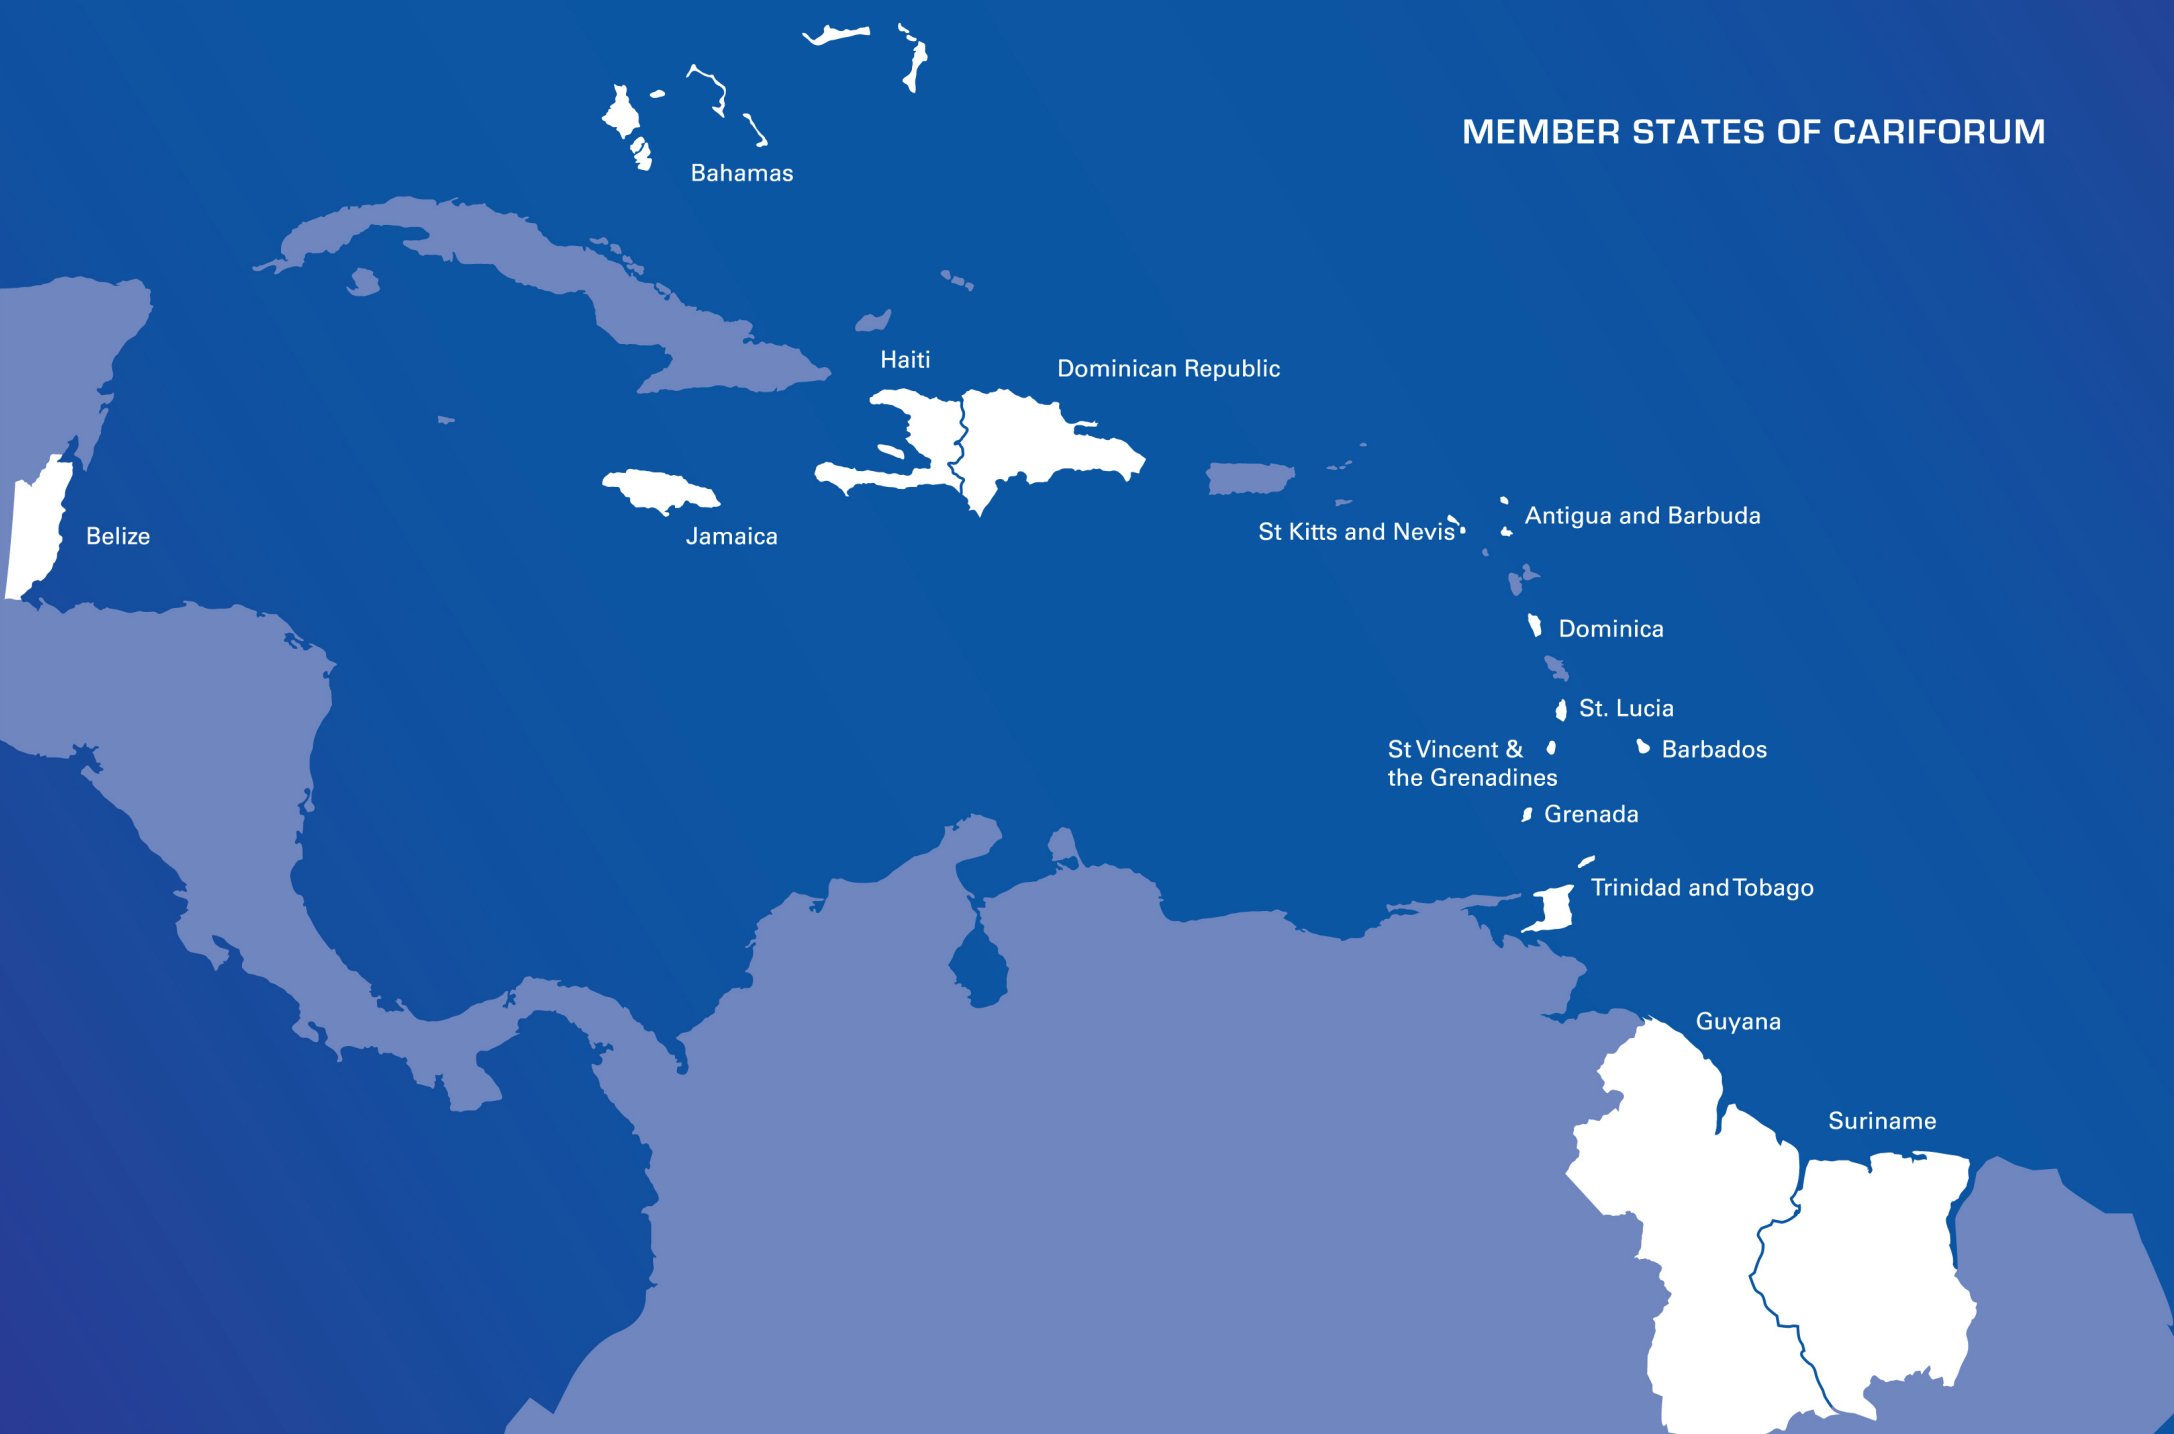 LOCATION OF THE ACTION: Antigua & Barbuda, The Bahamas, Barbados, Belize, Dominica, Dominican Republic, Grenada, Guyana, Haiti, Jamaica, Saint Lucia, Saint Kitts & Nevis, St. Vincent & the Grenadines, Suriname, and Trinidad and Tobago.